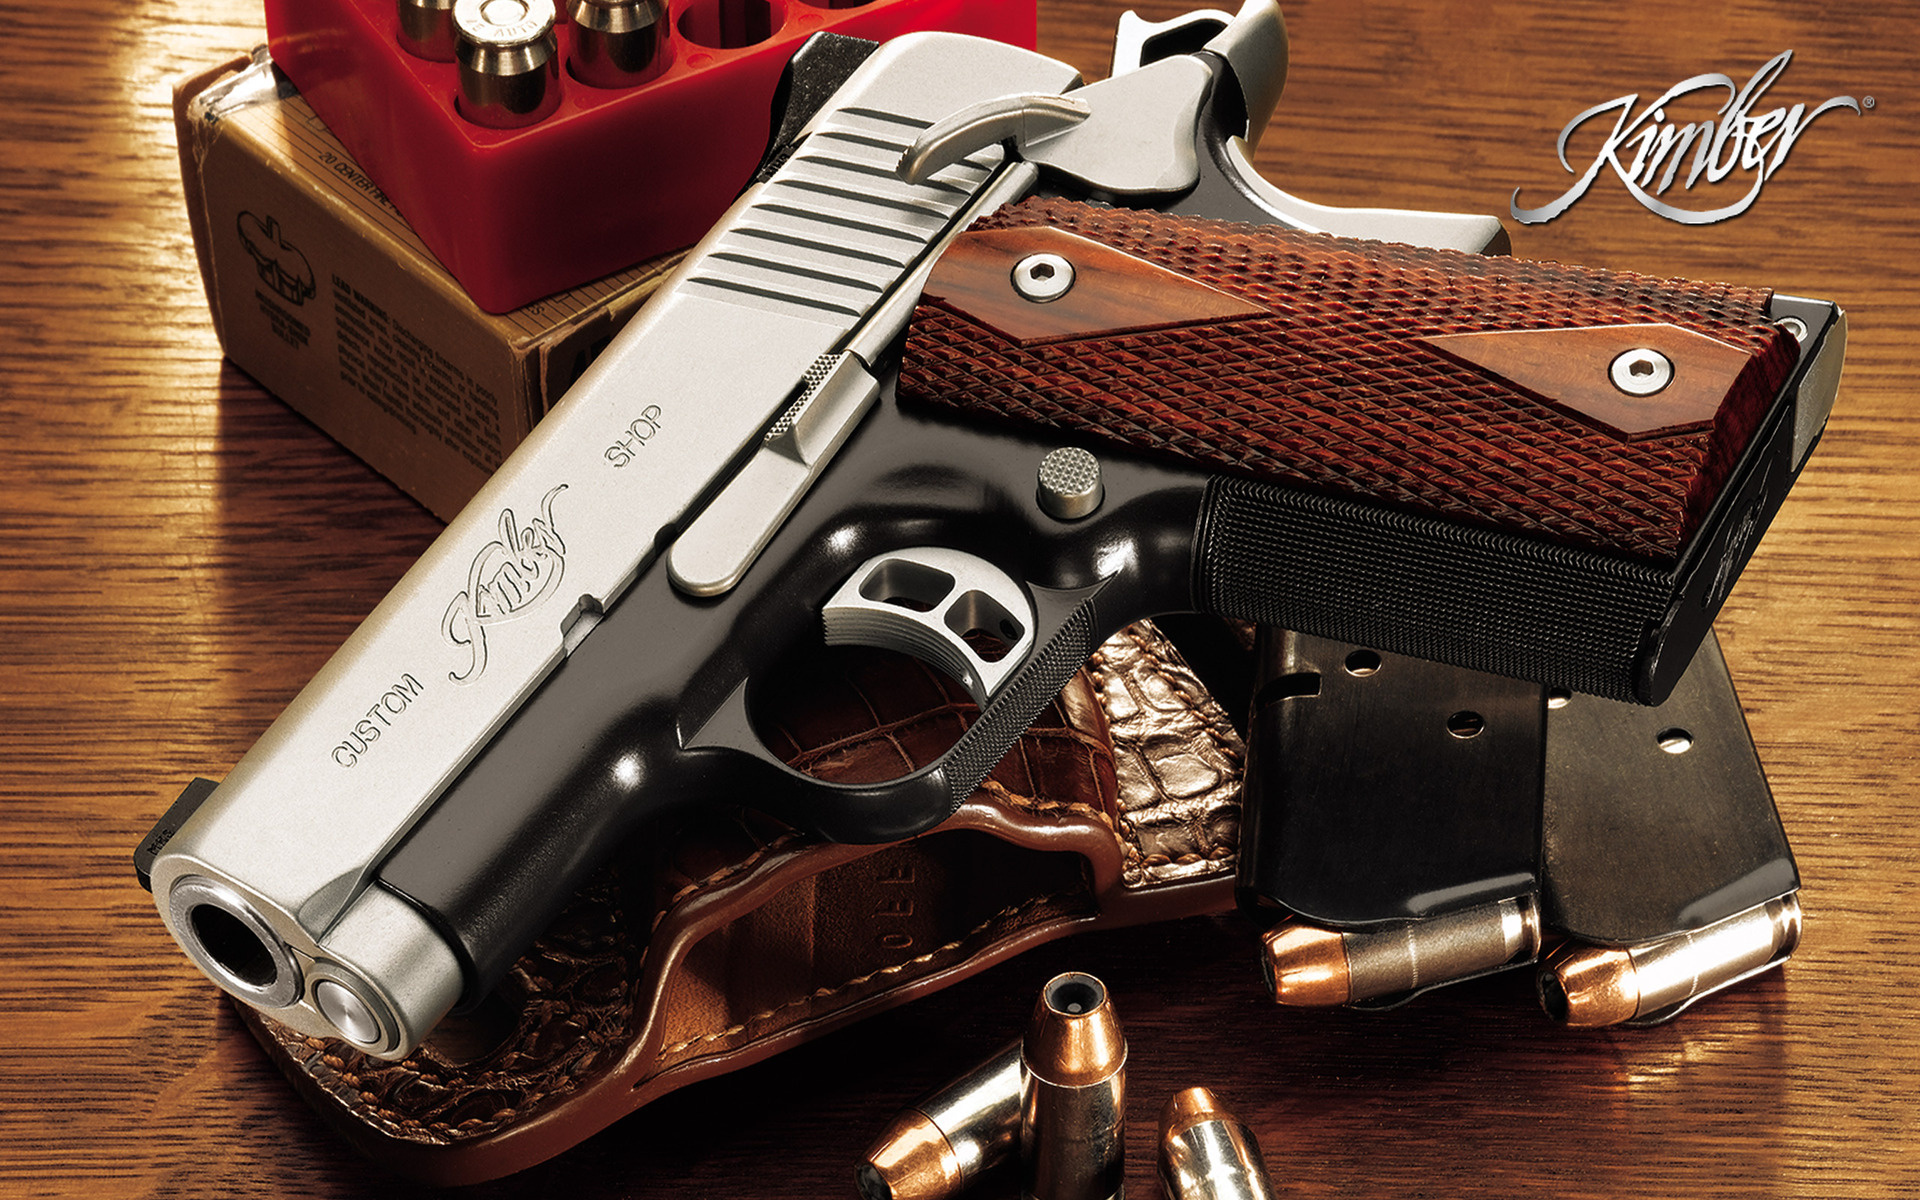 Hd Knife Wallpaper Kimber Pistol Full Hd Wallpaper And Background 1920x1200